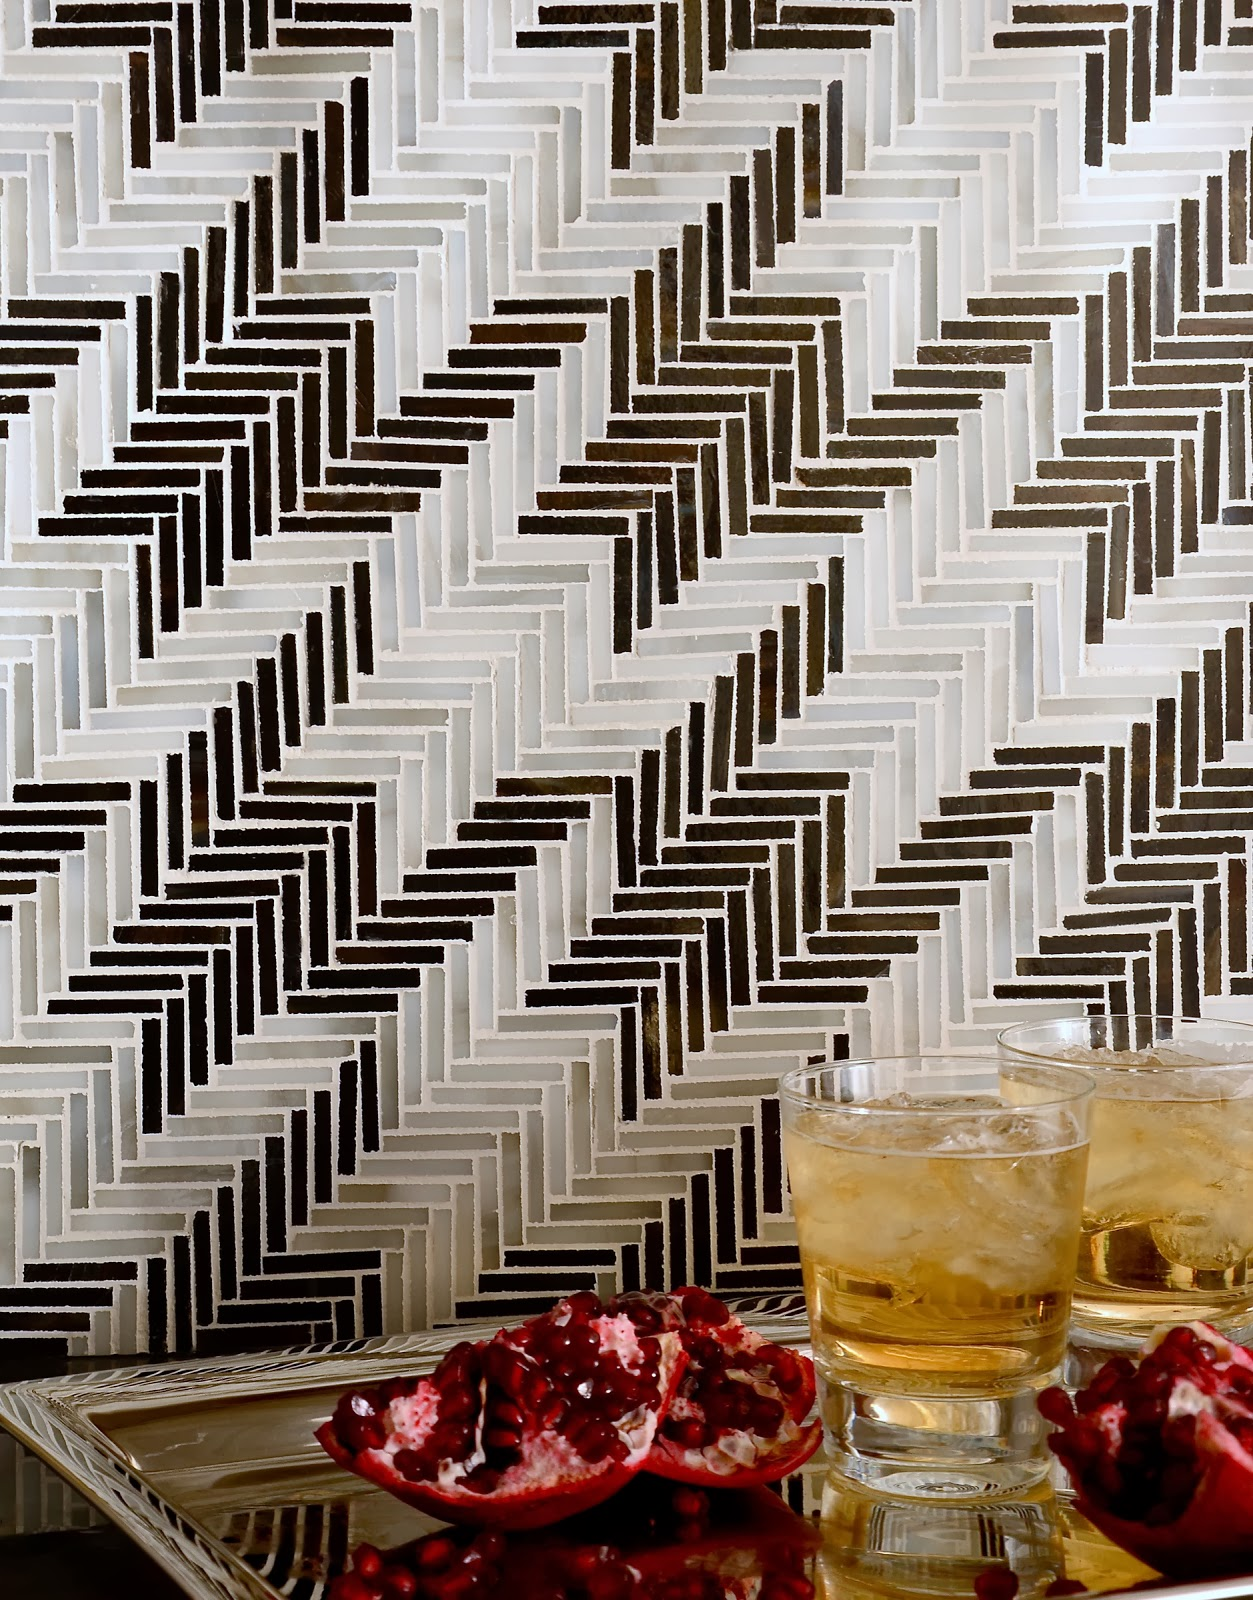 MoD Design Guru - Thinking-Outside-the-Box Design: DESIGNER SPOTLIGHT: Sara BALDWIN, Weaving Patterns in Glass